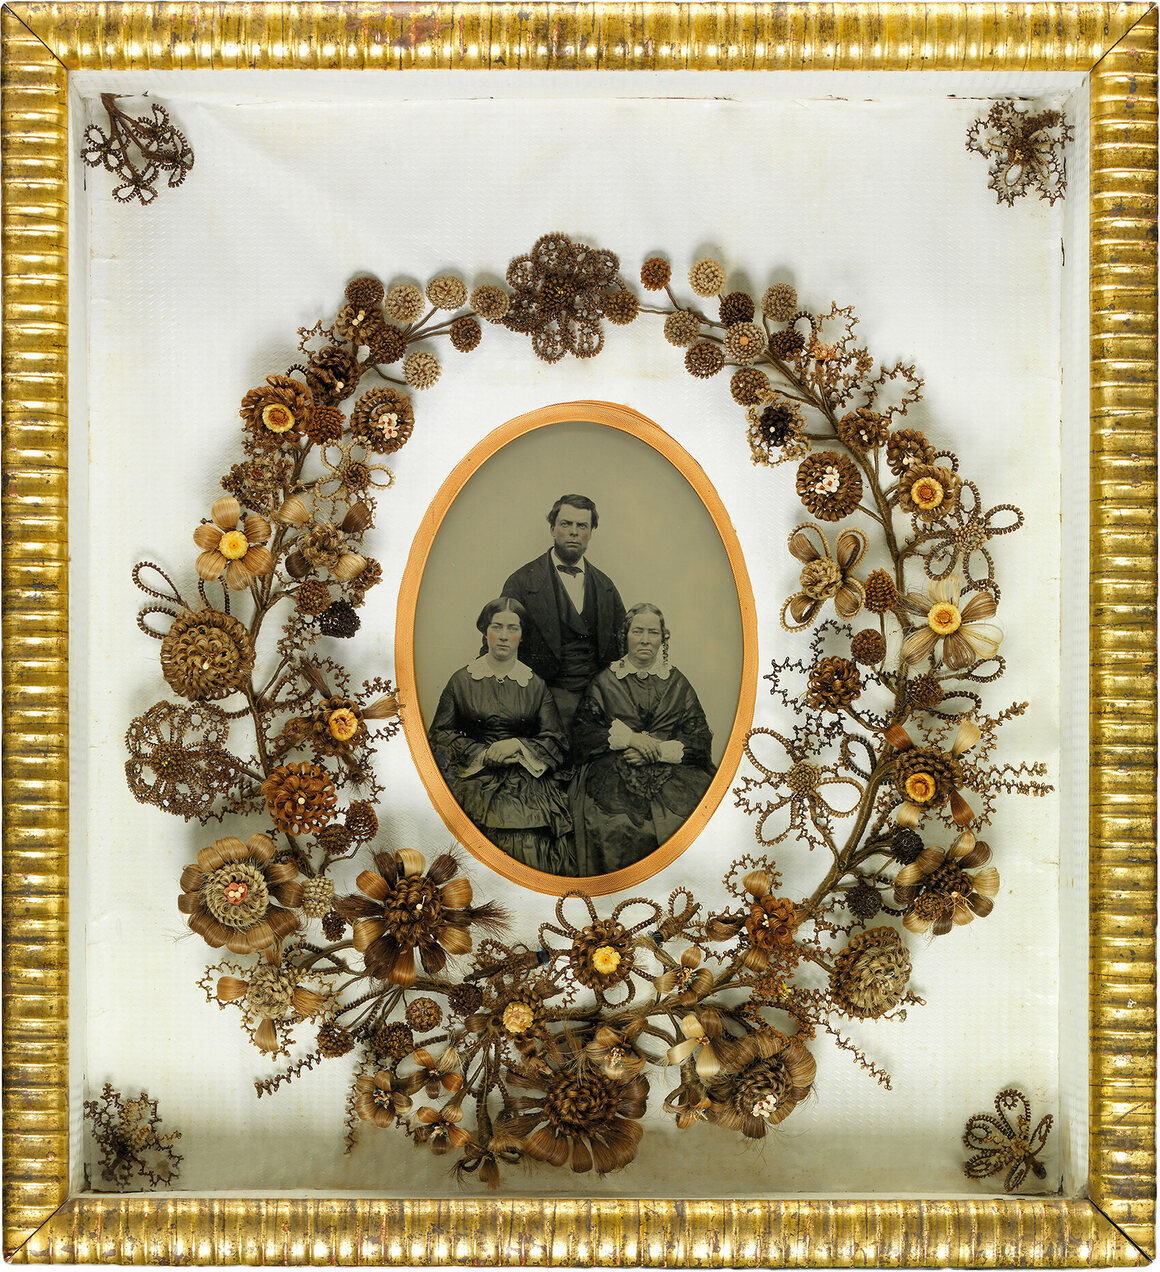 Wreath Surrounding An Ambrotype Made From Wood Gl Wire Straw